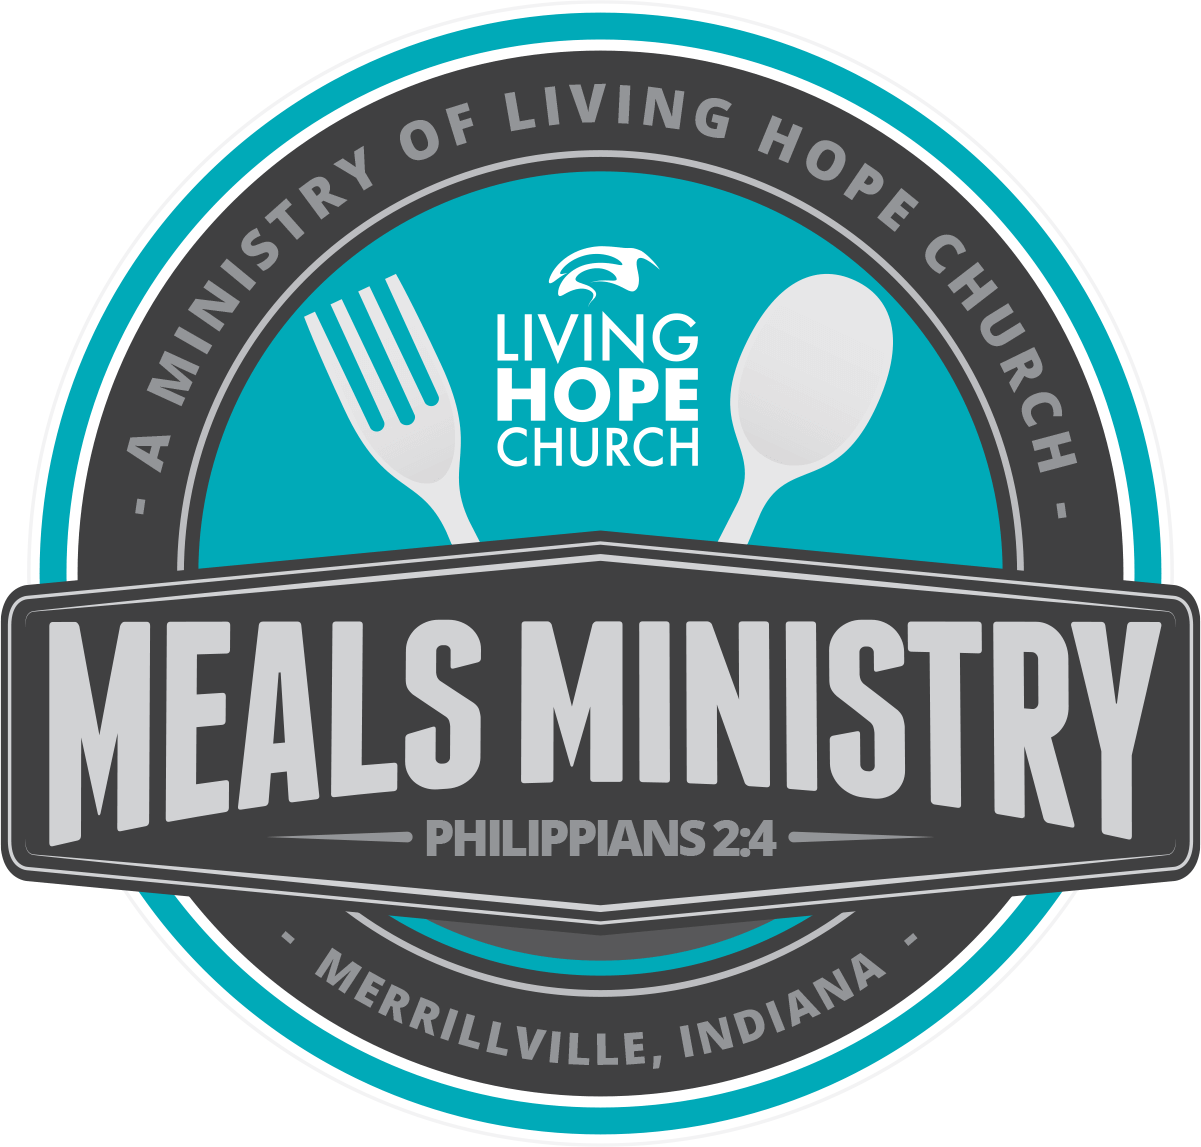 Living Hope Church Meals Ministry logo